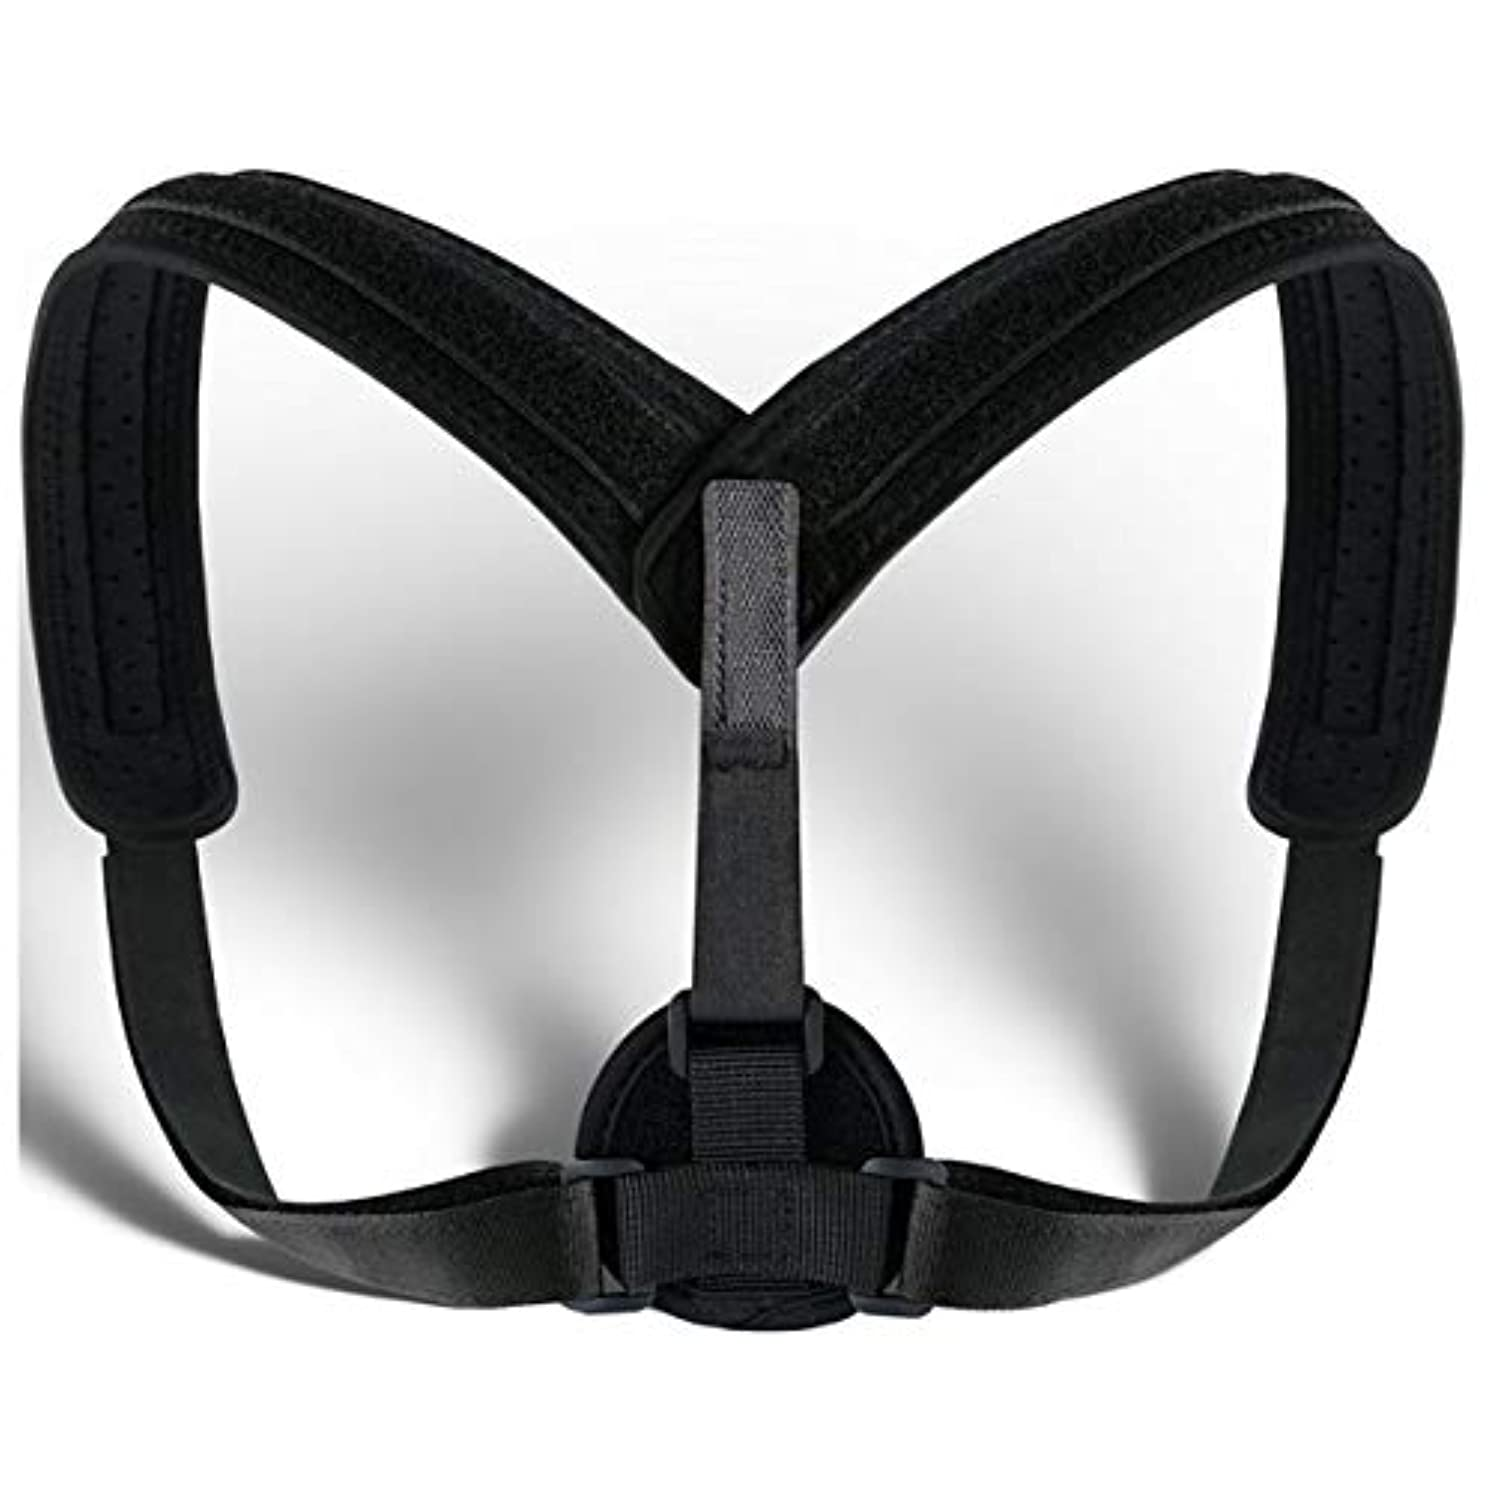 開拓者人事雪だるまを作るUnisex Posture Corrector Lumbar Lower Back Support Shoulder Brace Pain Relief AU Back Posture Corrector